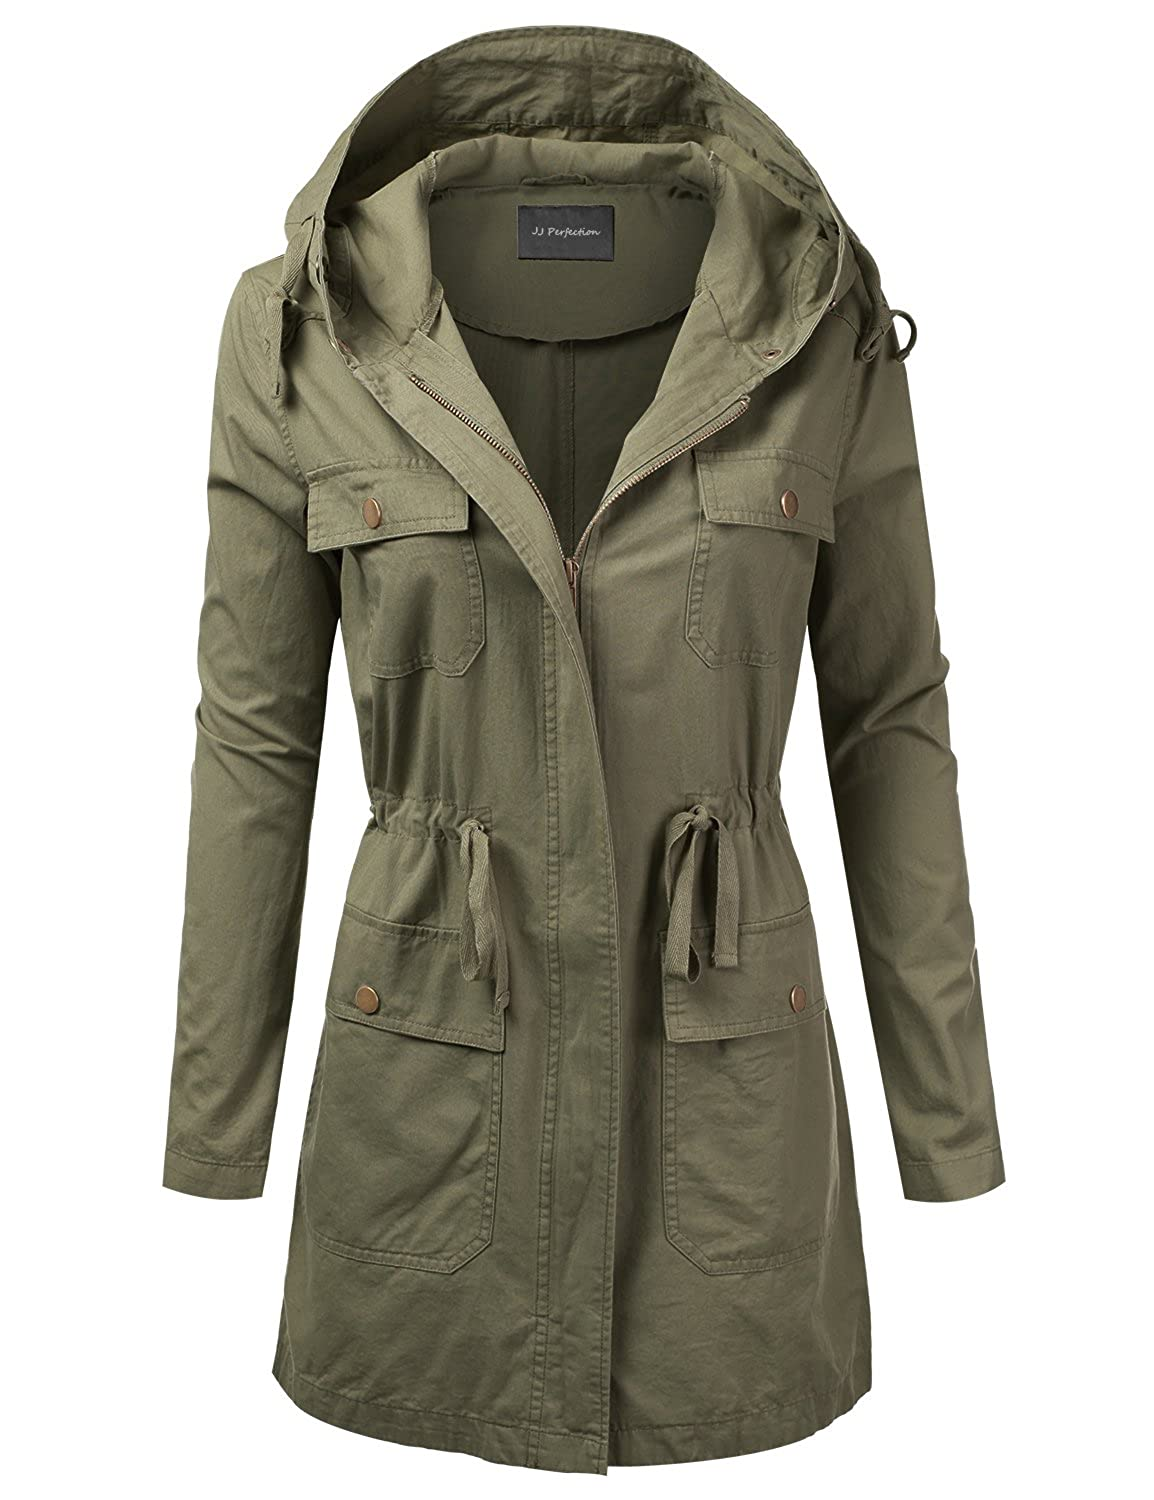 Awoja0441_olive JJ Perfection Women's Casual Lightweight Anorak Army Utility Hoodie Jacket